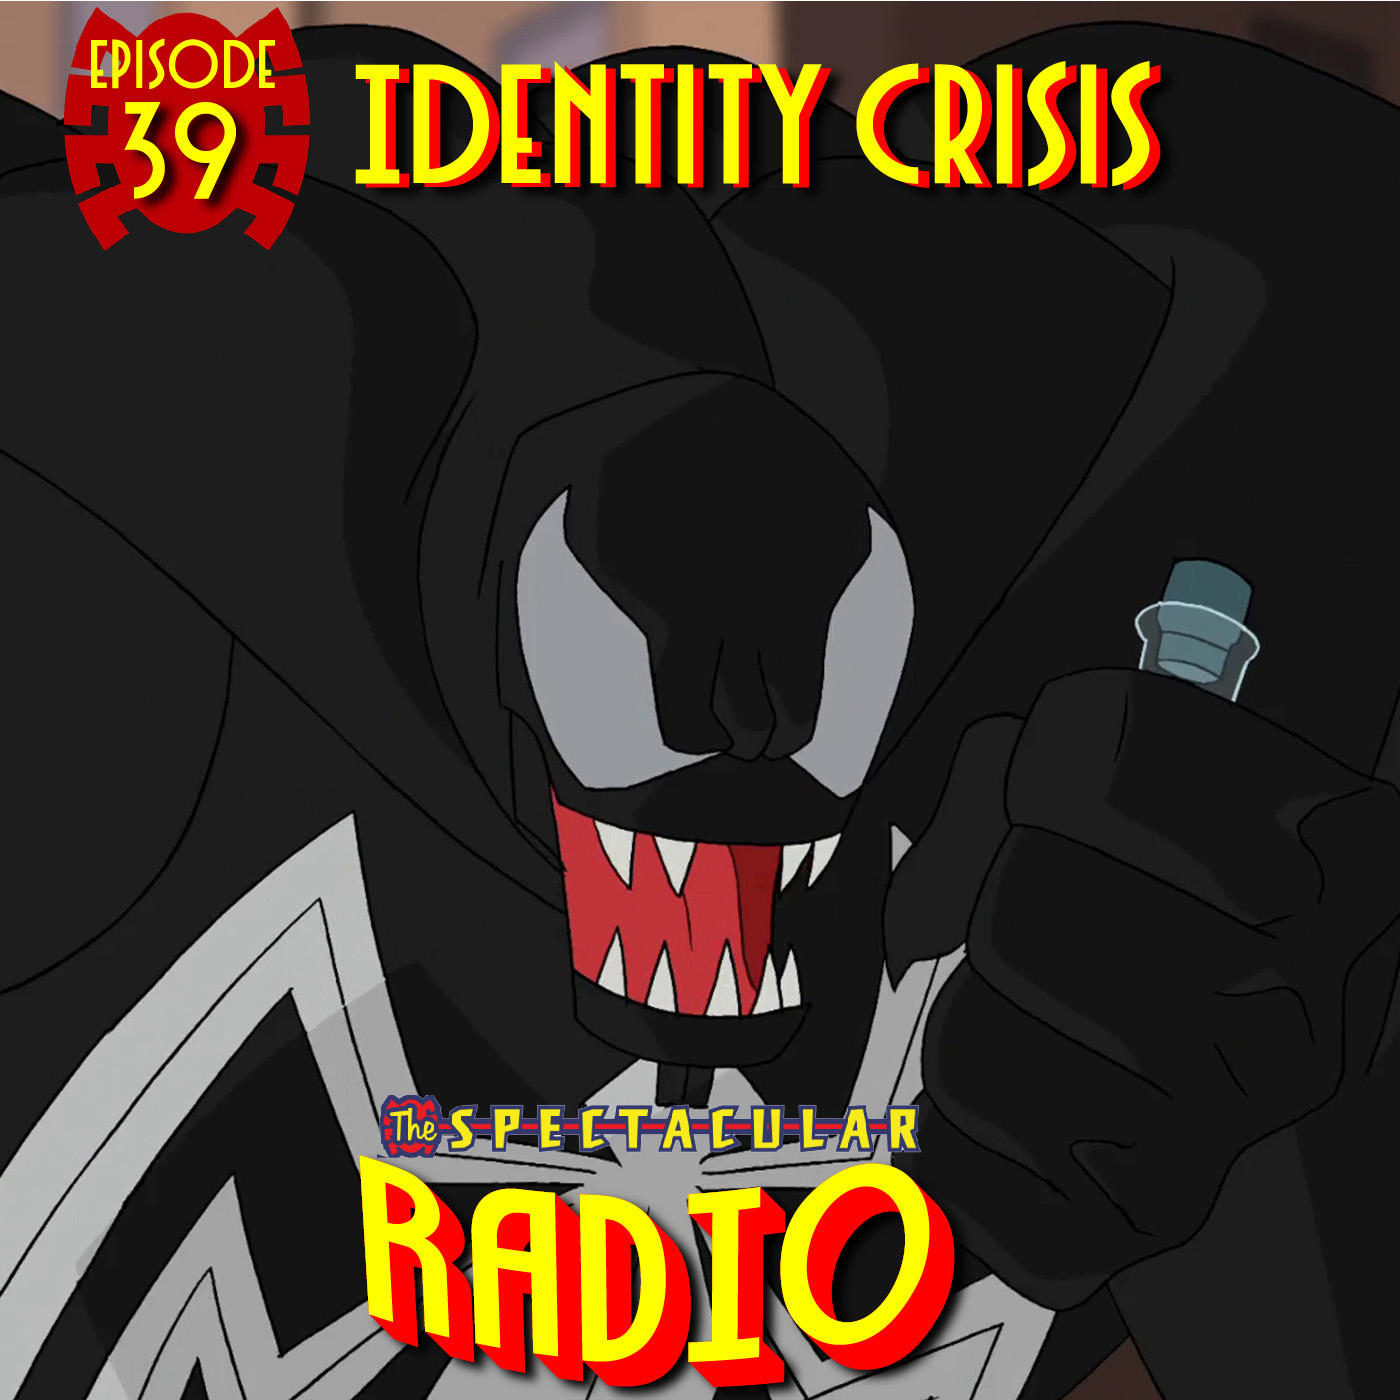 """Spectacular Radio Episode 39: """"Identity Crisis"""" With Greg Weisman & Victor Cook"""